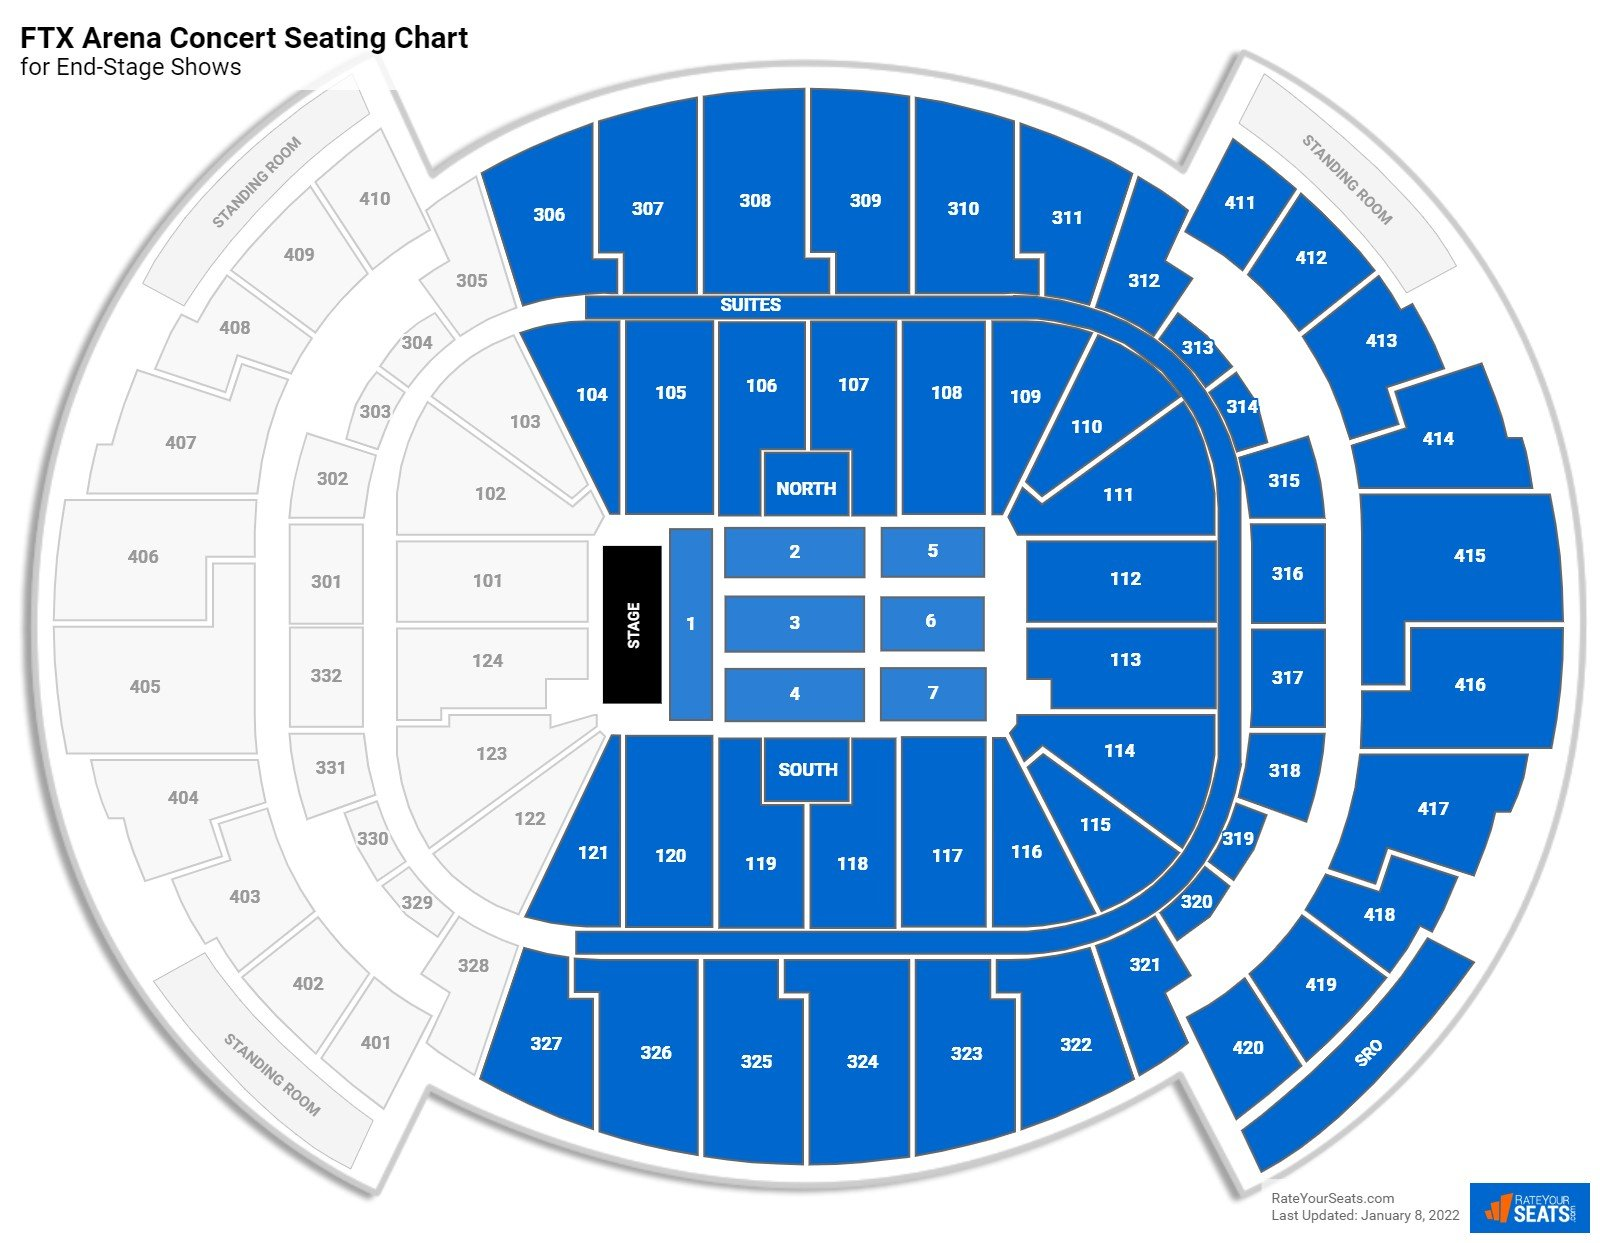 AmericanAirlines Arena Seating Chart for Concerts